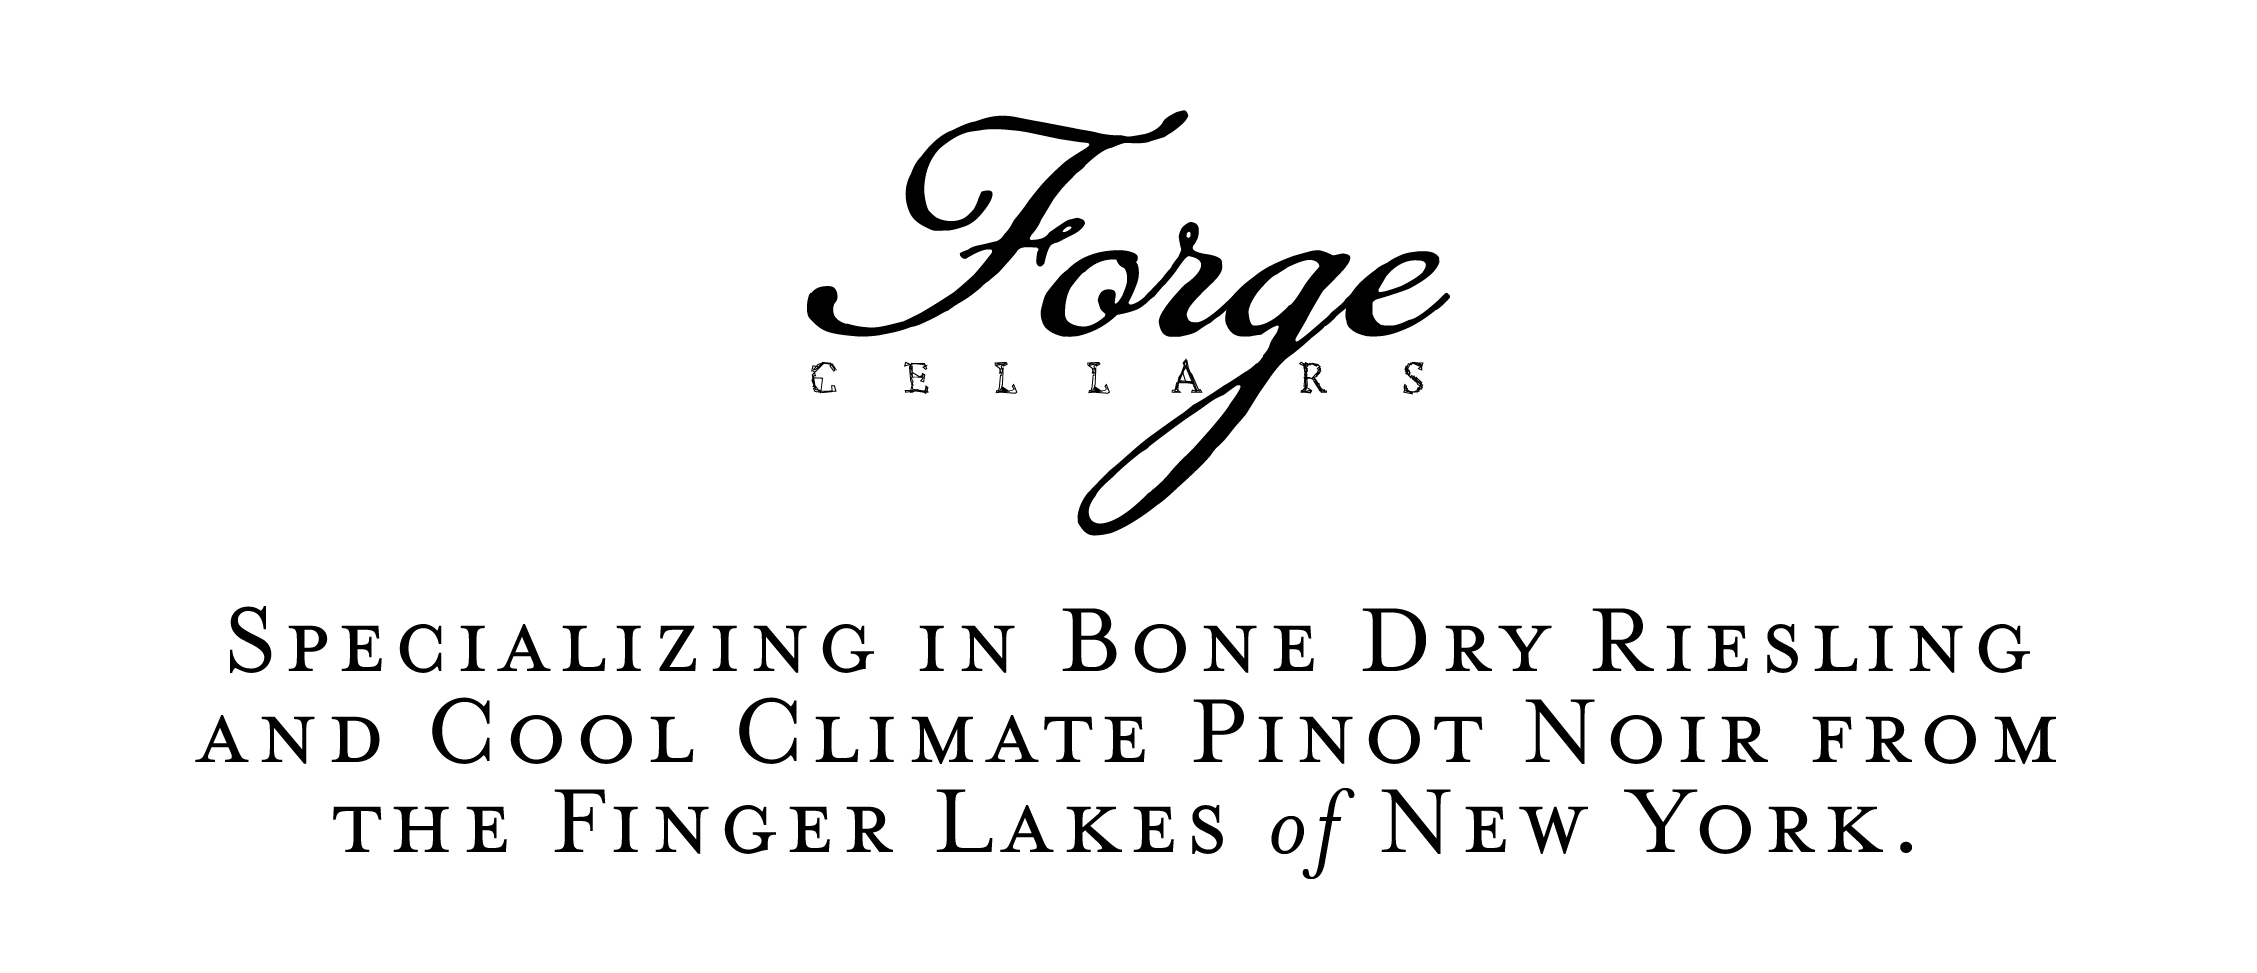 Forge Cellars specializing in bone dry Riesling and cool climate Pinot Noir in the Finger Lakes region of Upstate New York